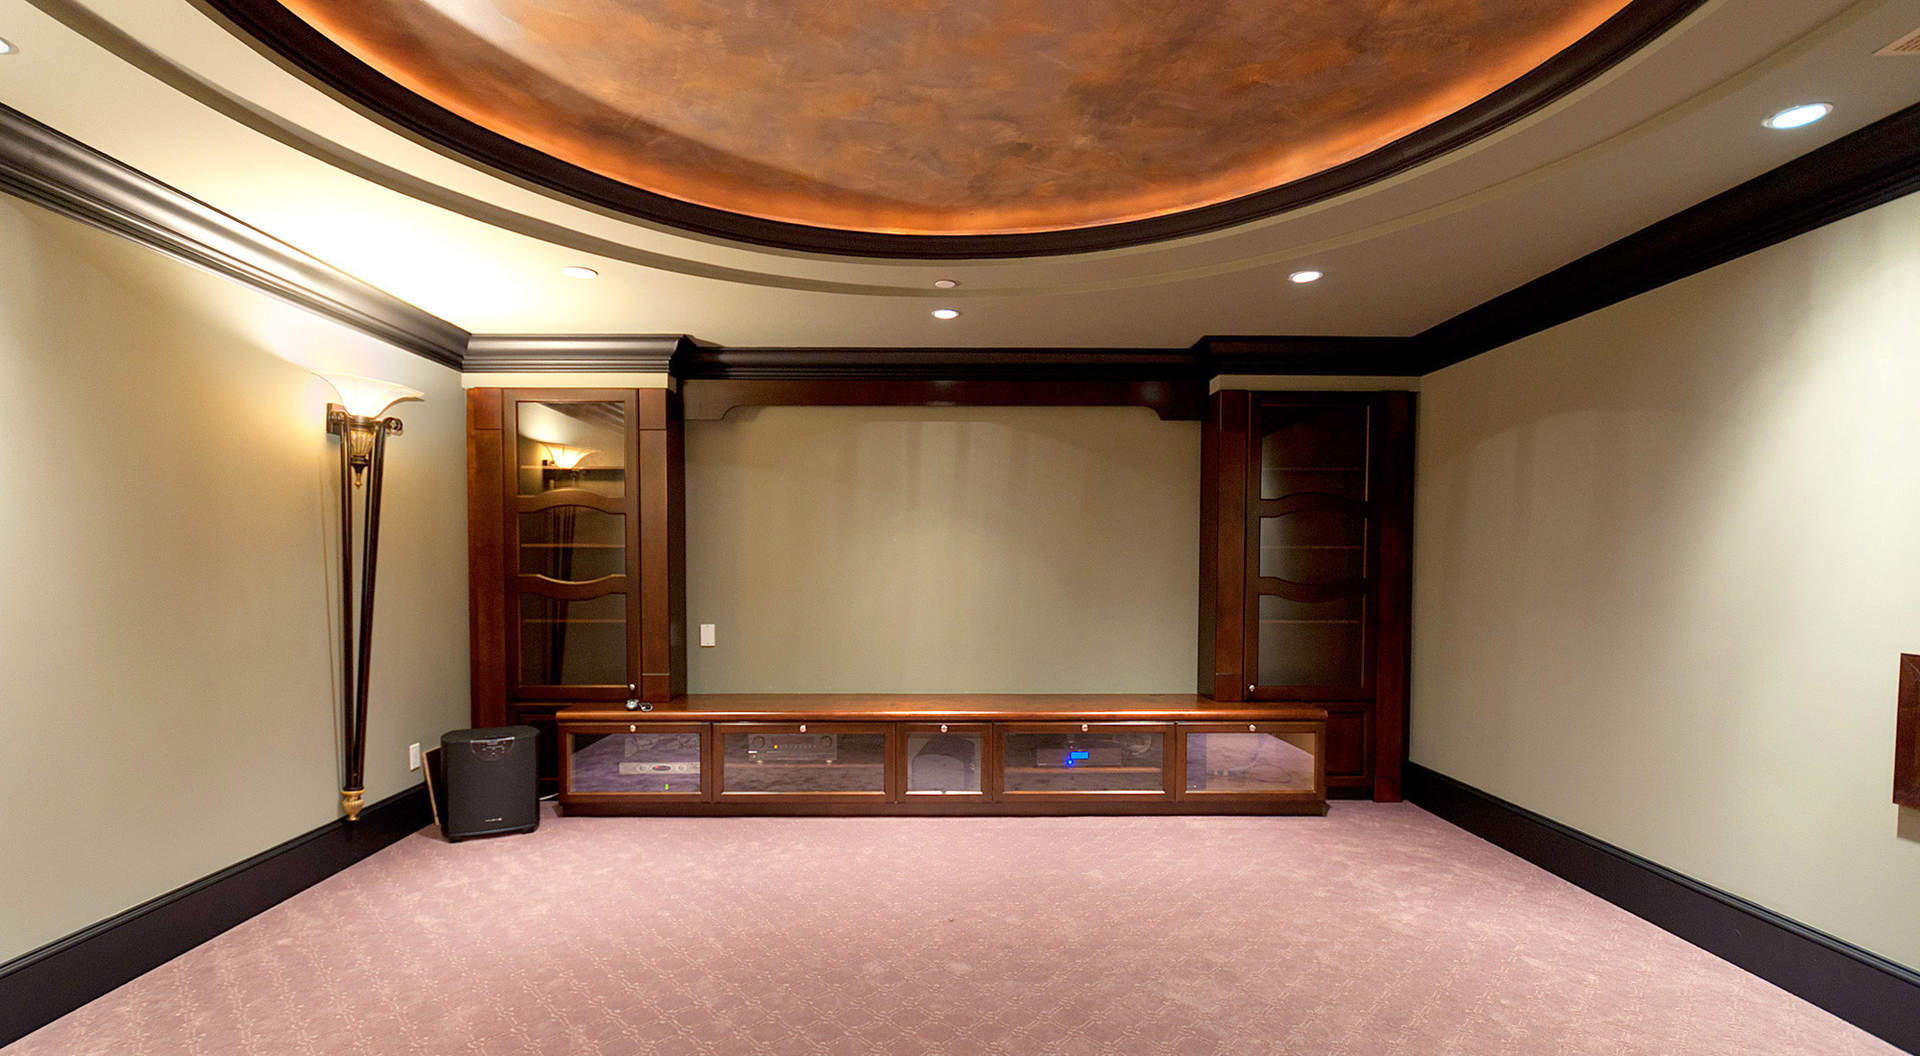 State-of-the Art Theatre Room